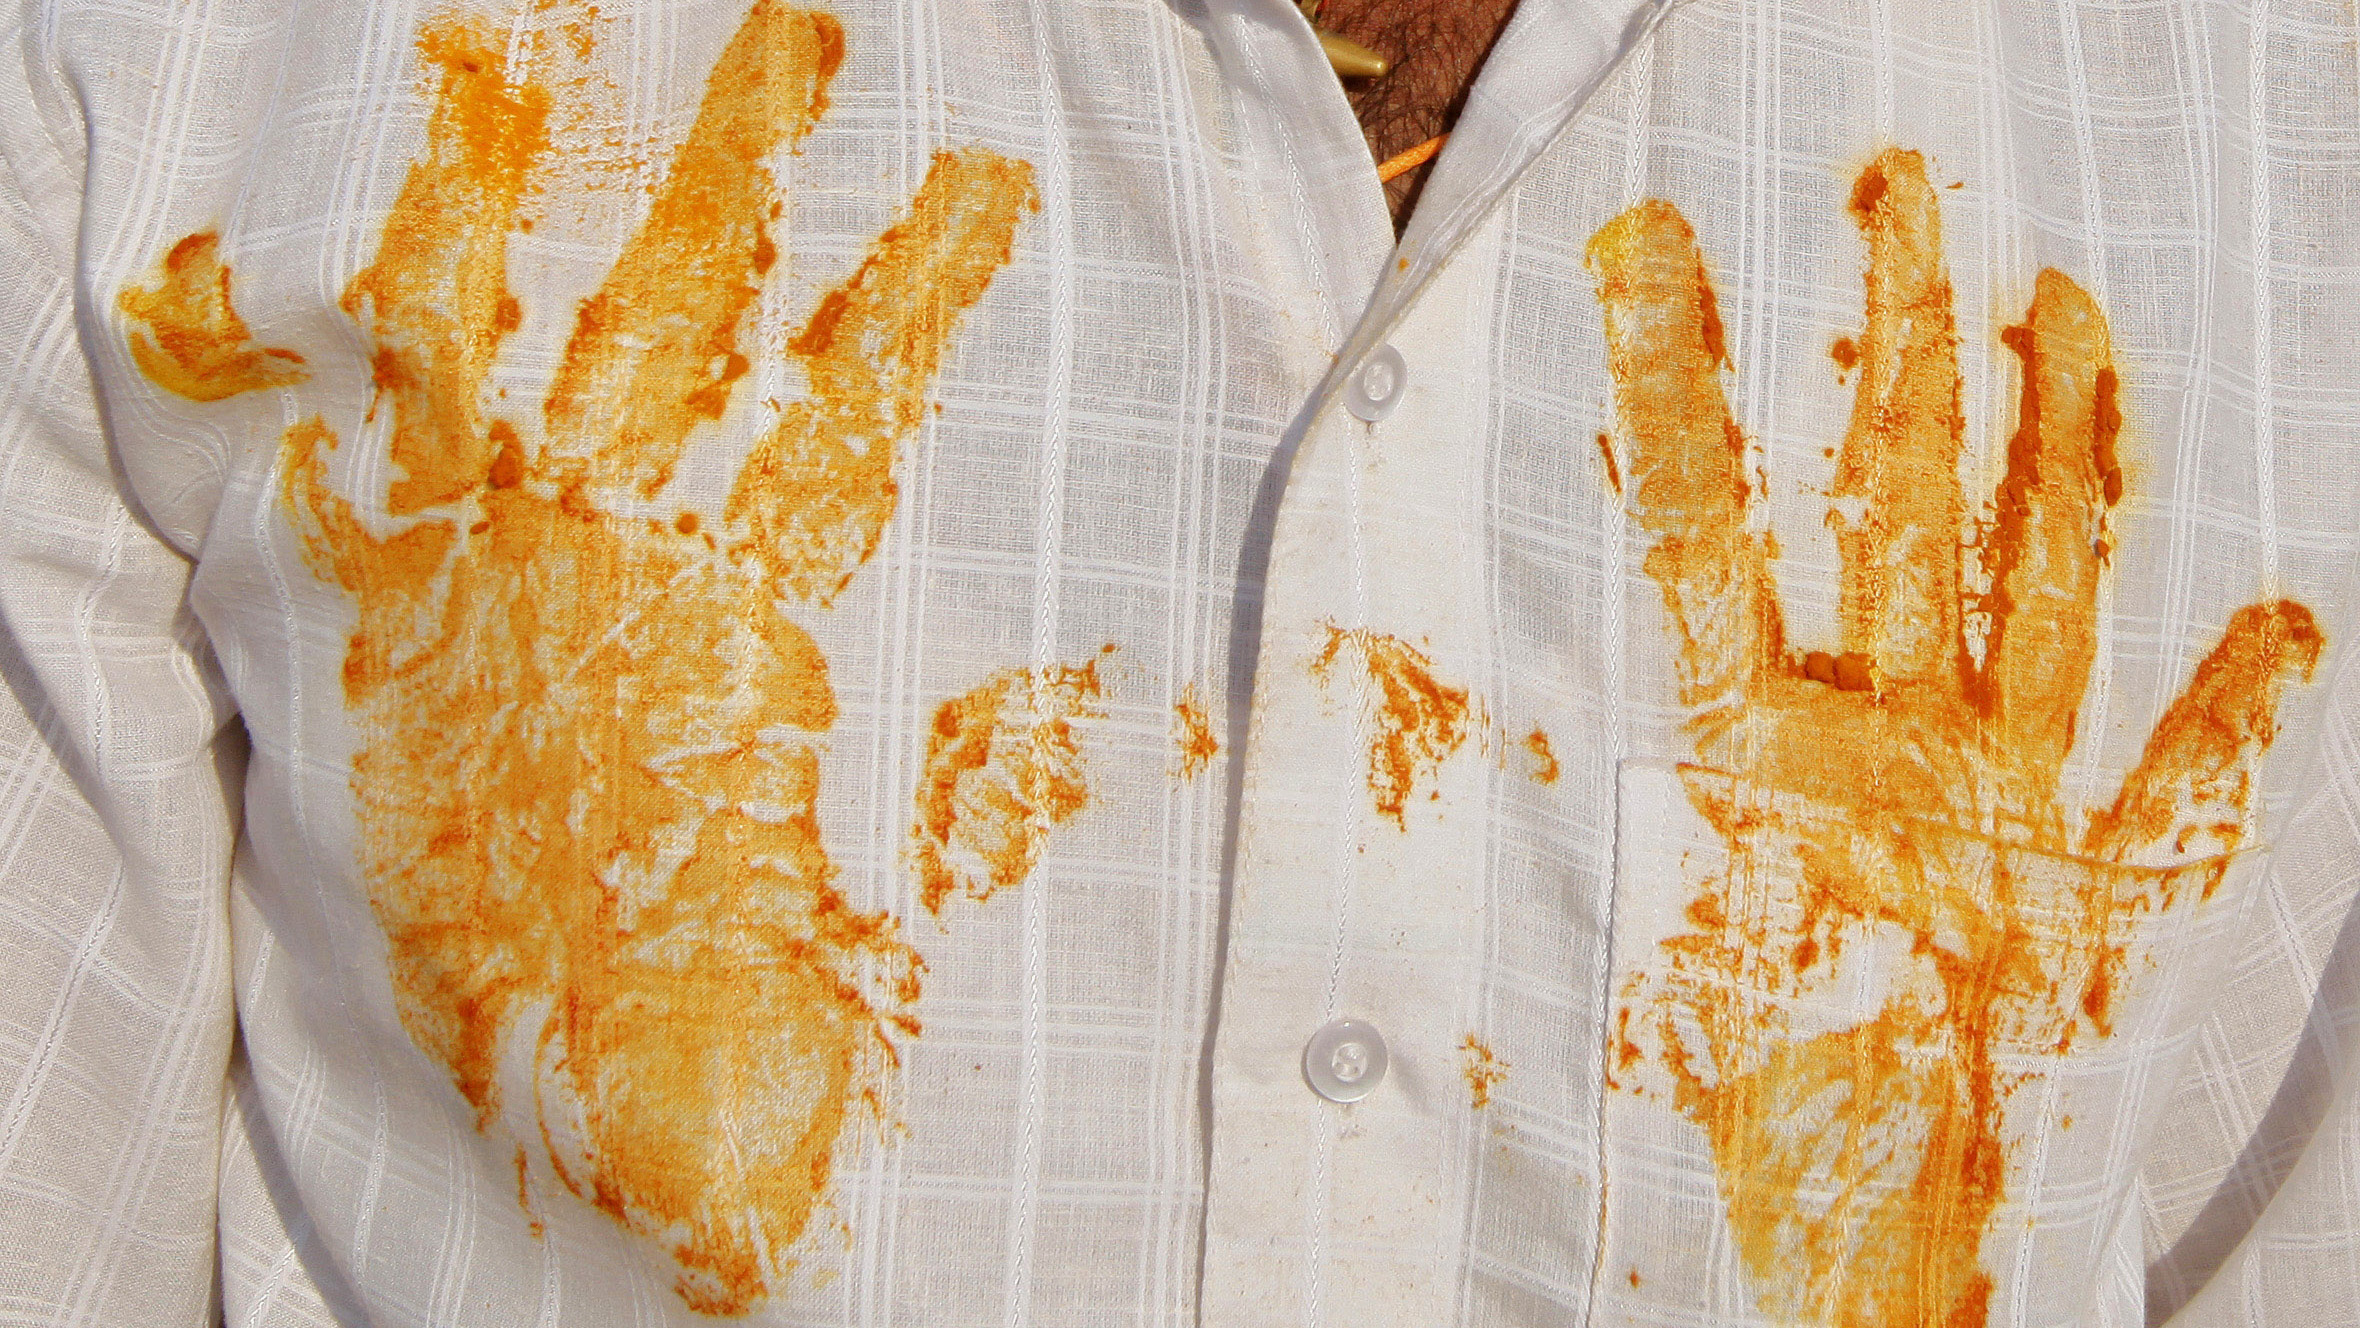 In this Monday, March 11, 2013 photo, a devotee's shirt has hand prints of turmeric during a procession at the temple of the shepherd god Khandoba on 'Somavati Amavasya' at the Jejuri temple in Pune district, Maharashtra state, India. 'Somavati Amavasya' is the day when a New Moon falls on a Monday. (AP Photo/Rajanish Kakade)